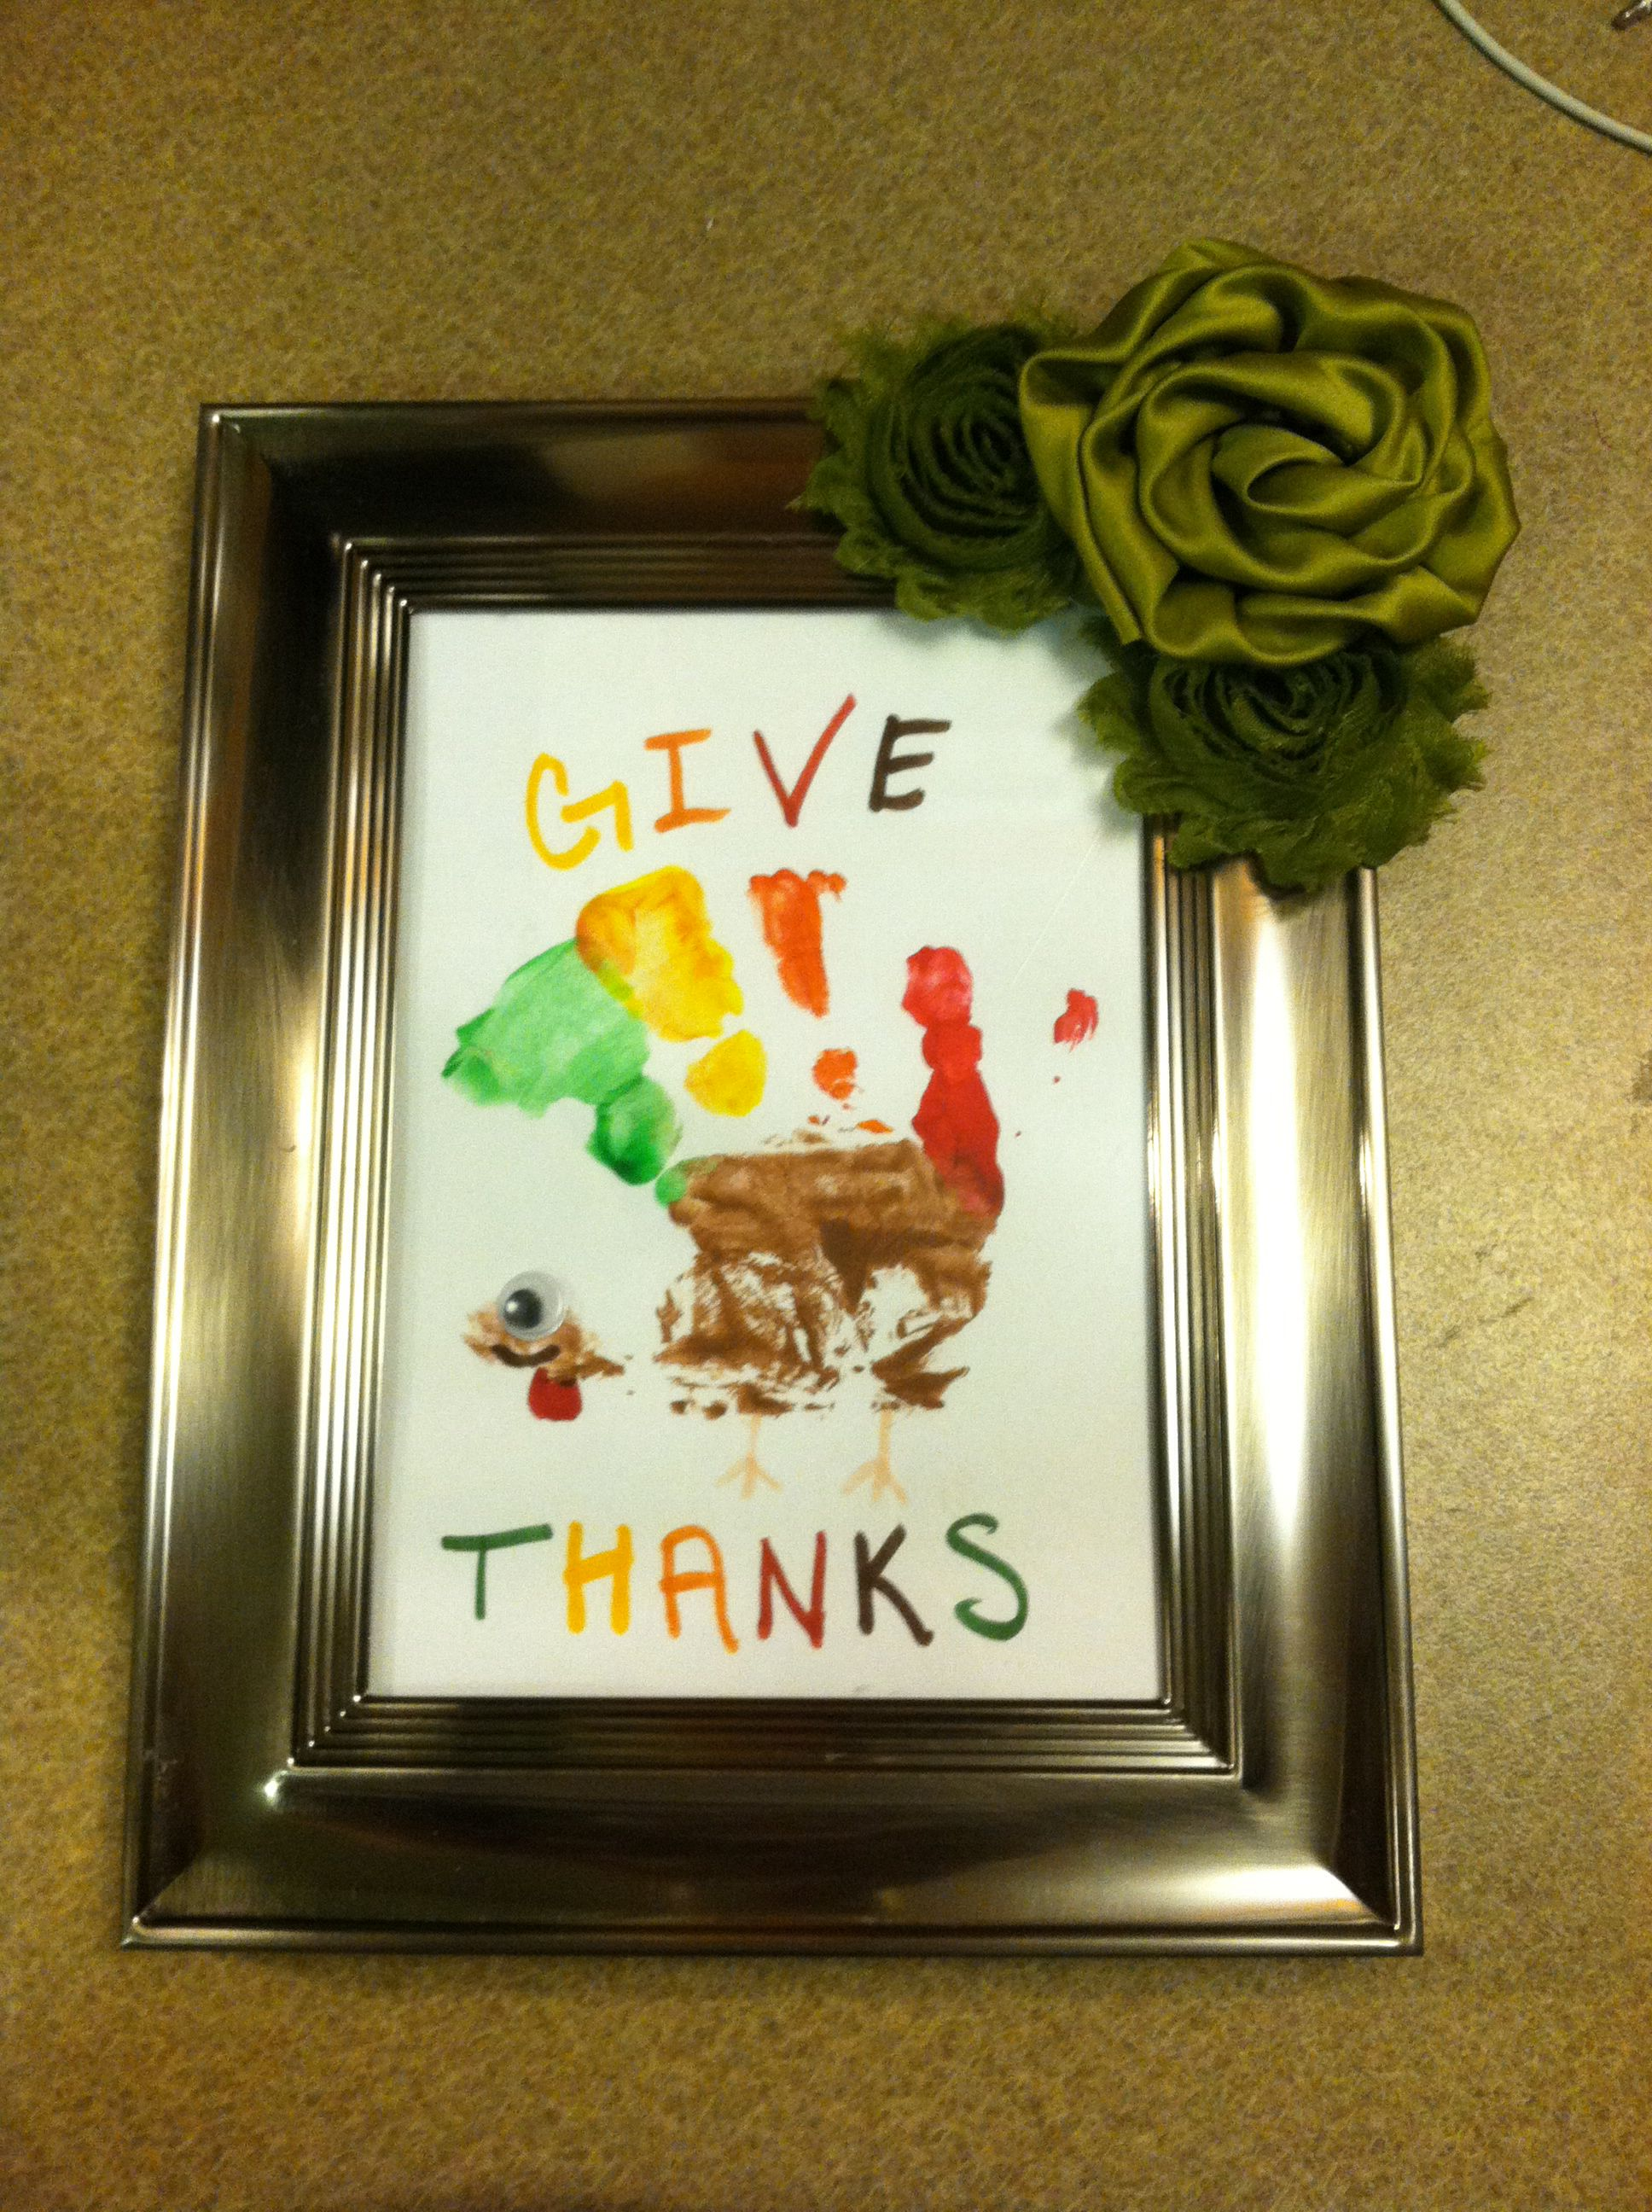 14+ Crafts for 2 year olds thanksgiving ideas in 2021